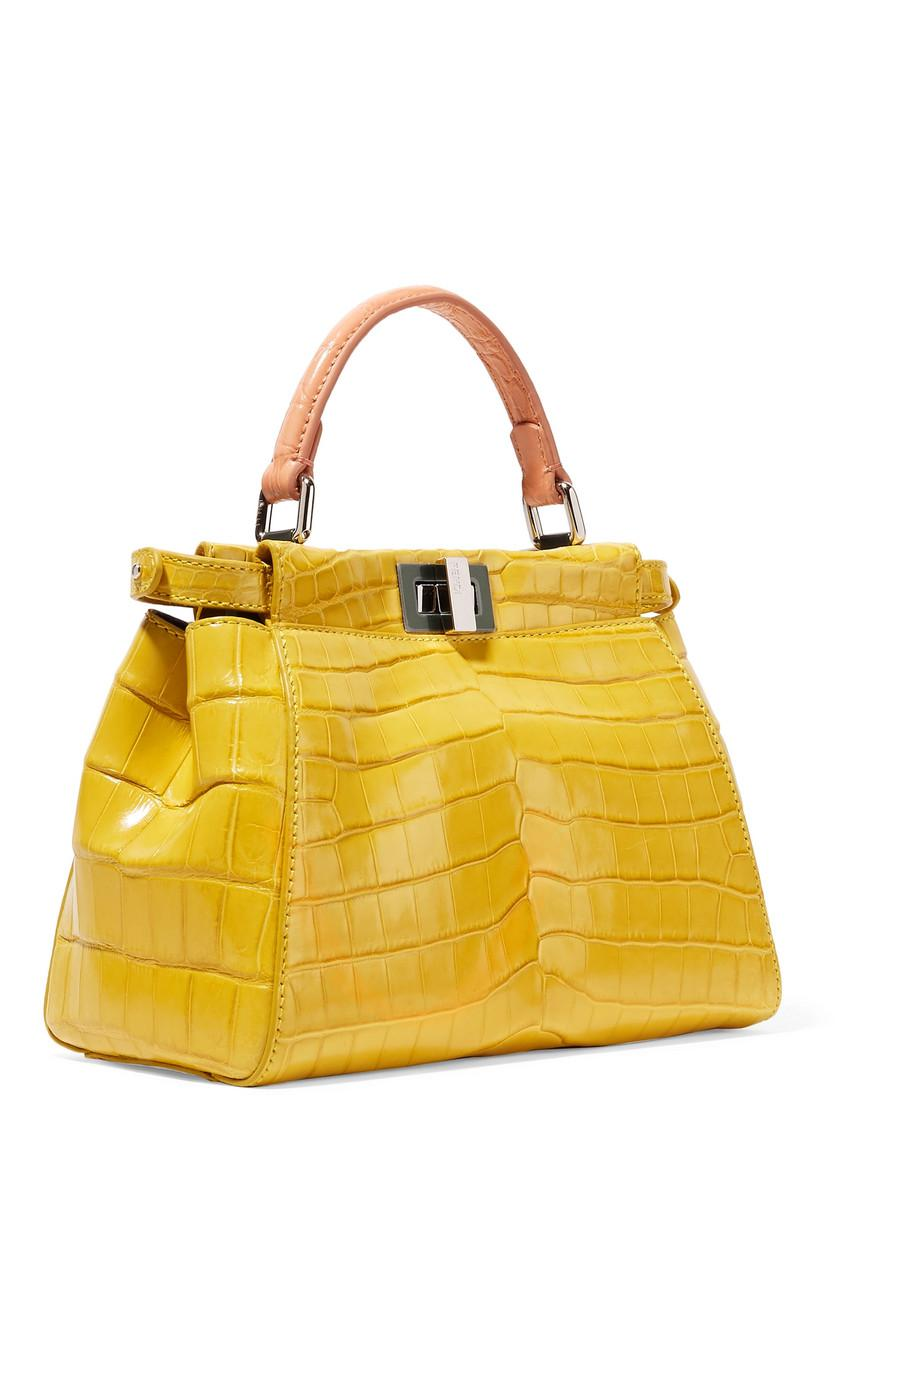 Lyst - Fendi Peekaboo Mini Crocodile Shoulder Bag in Yellow 09fcaa0a5dbec